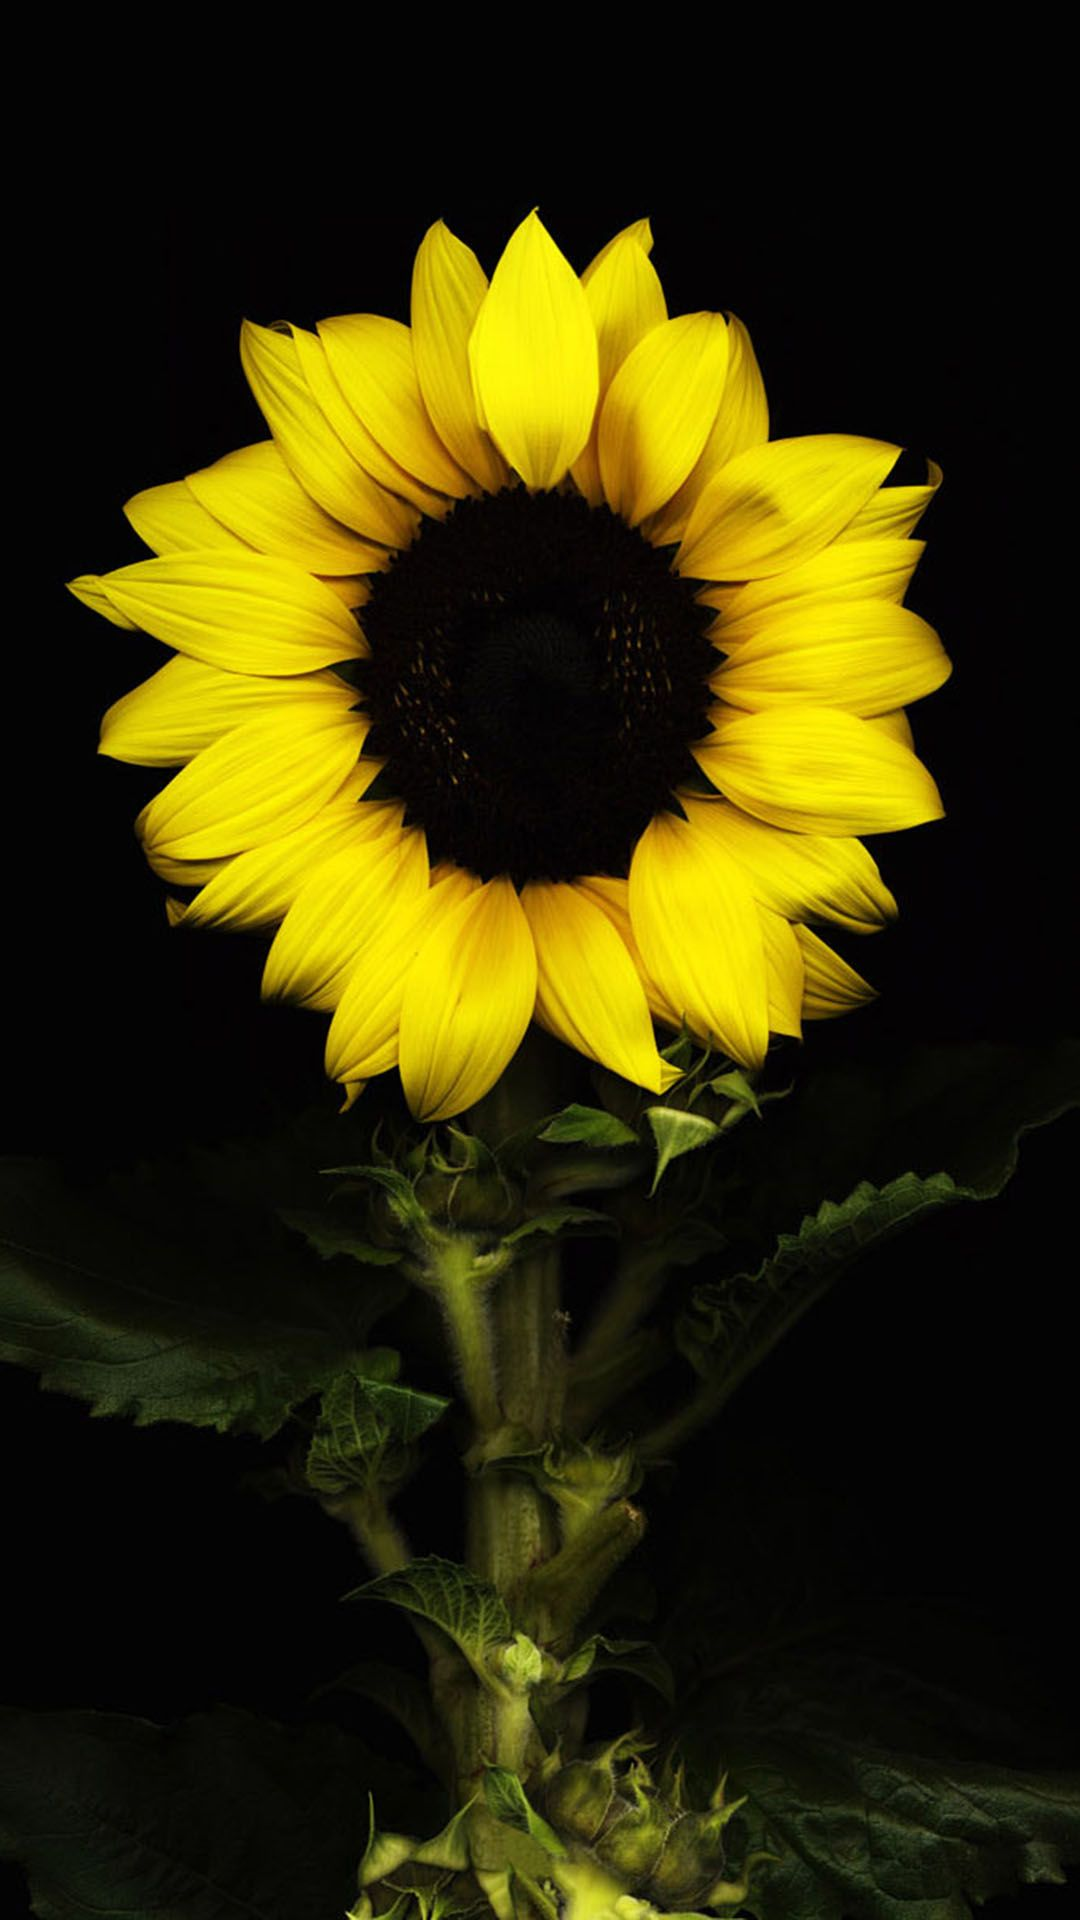 sunflower black Sunflower pictures, Sunflower wallpaper